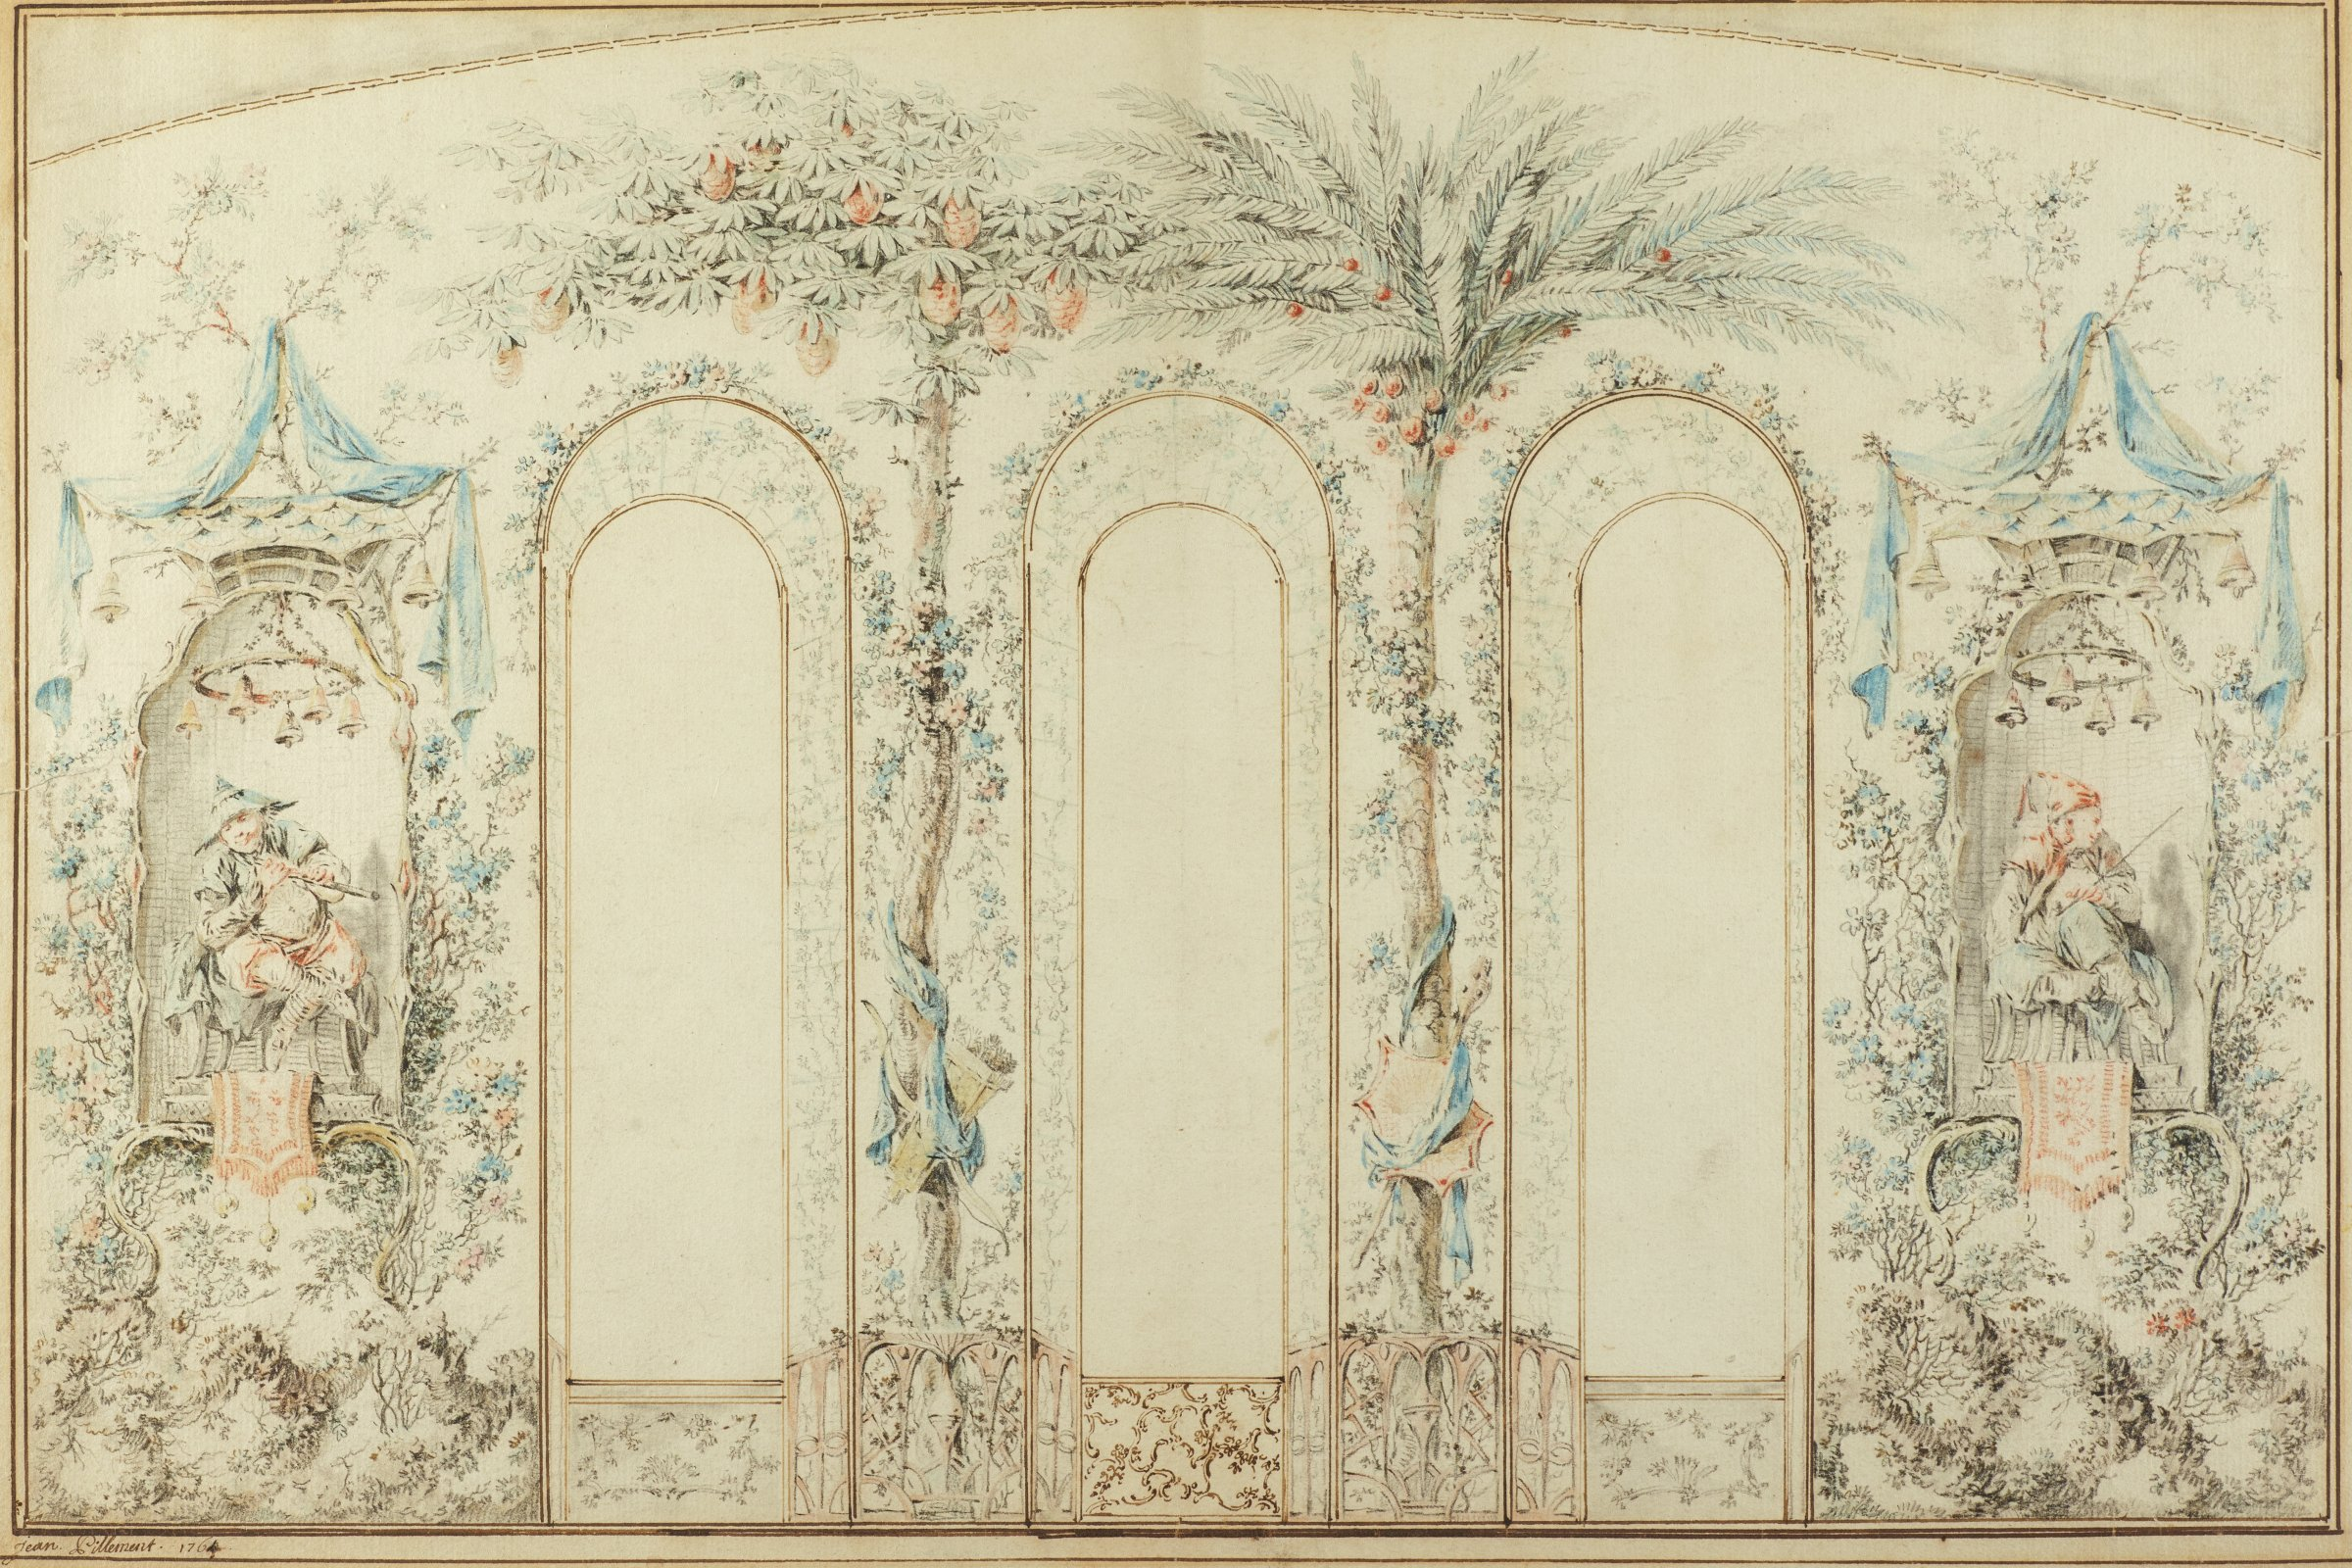 A wall with three arched windows is decorated with chinoiserie design. Flanking the windows on either side are niches with figures playing instruments.